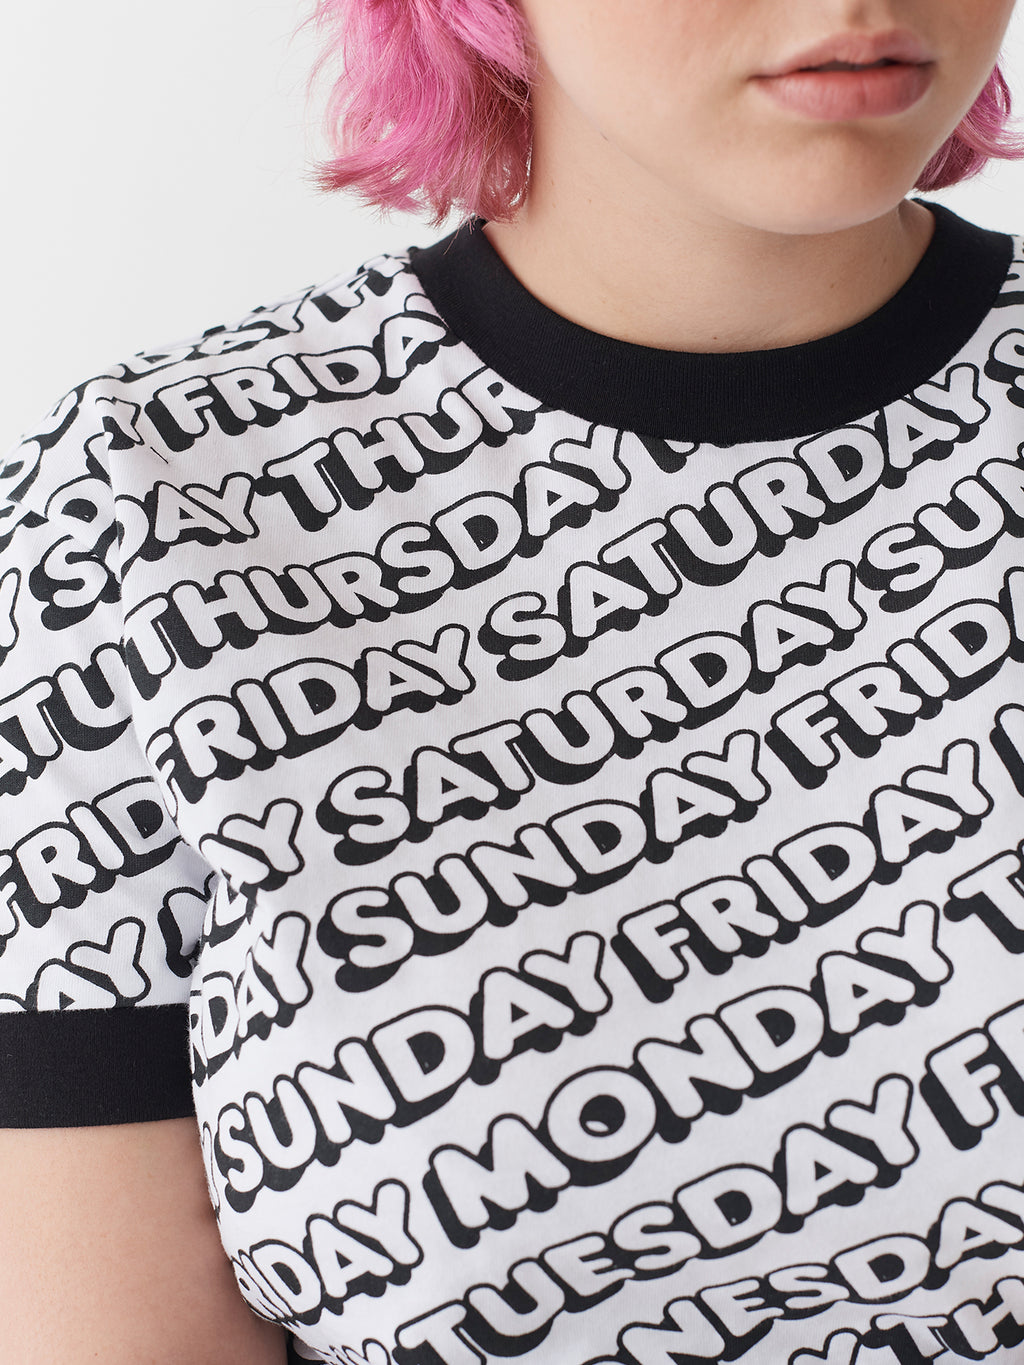 Lazy Oaf Day After Day Ringer T-Shirt